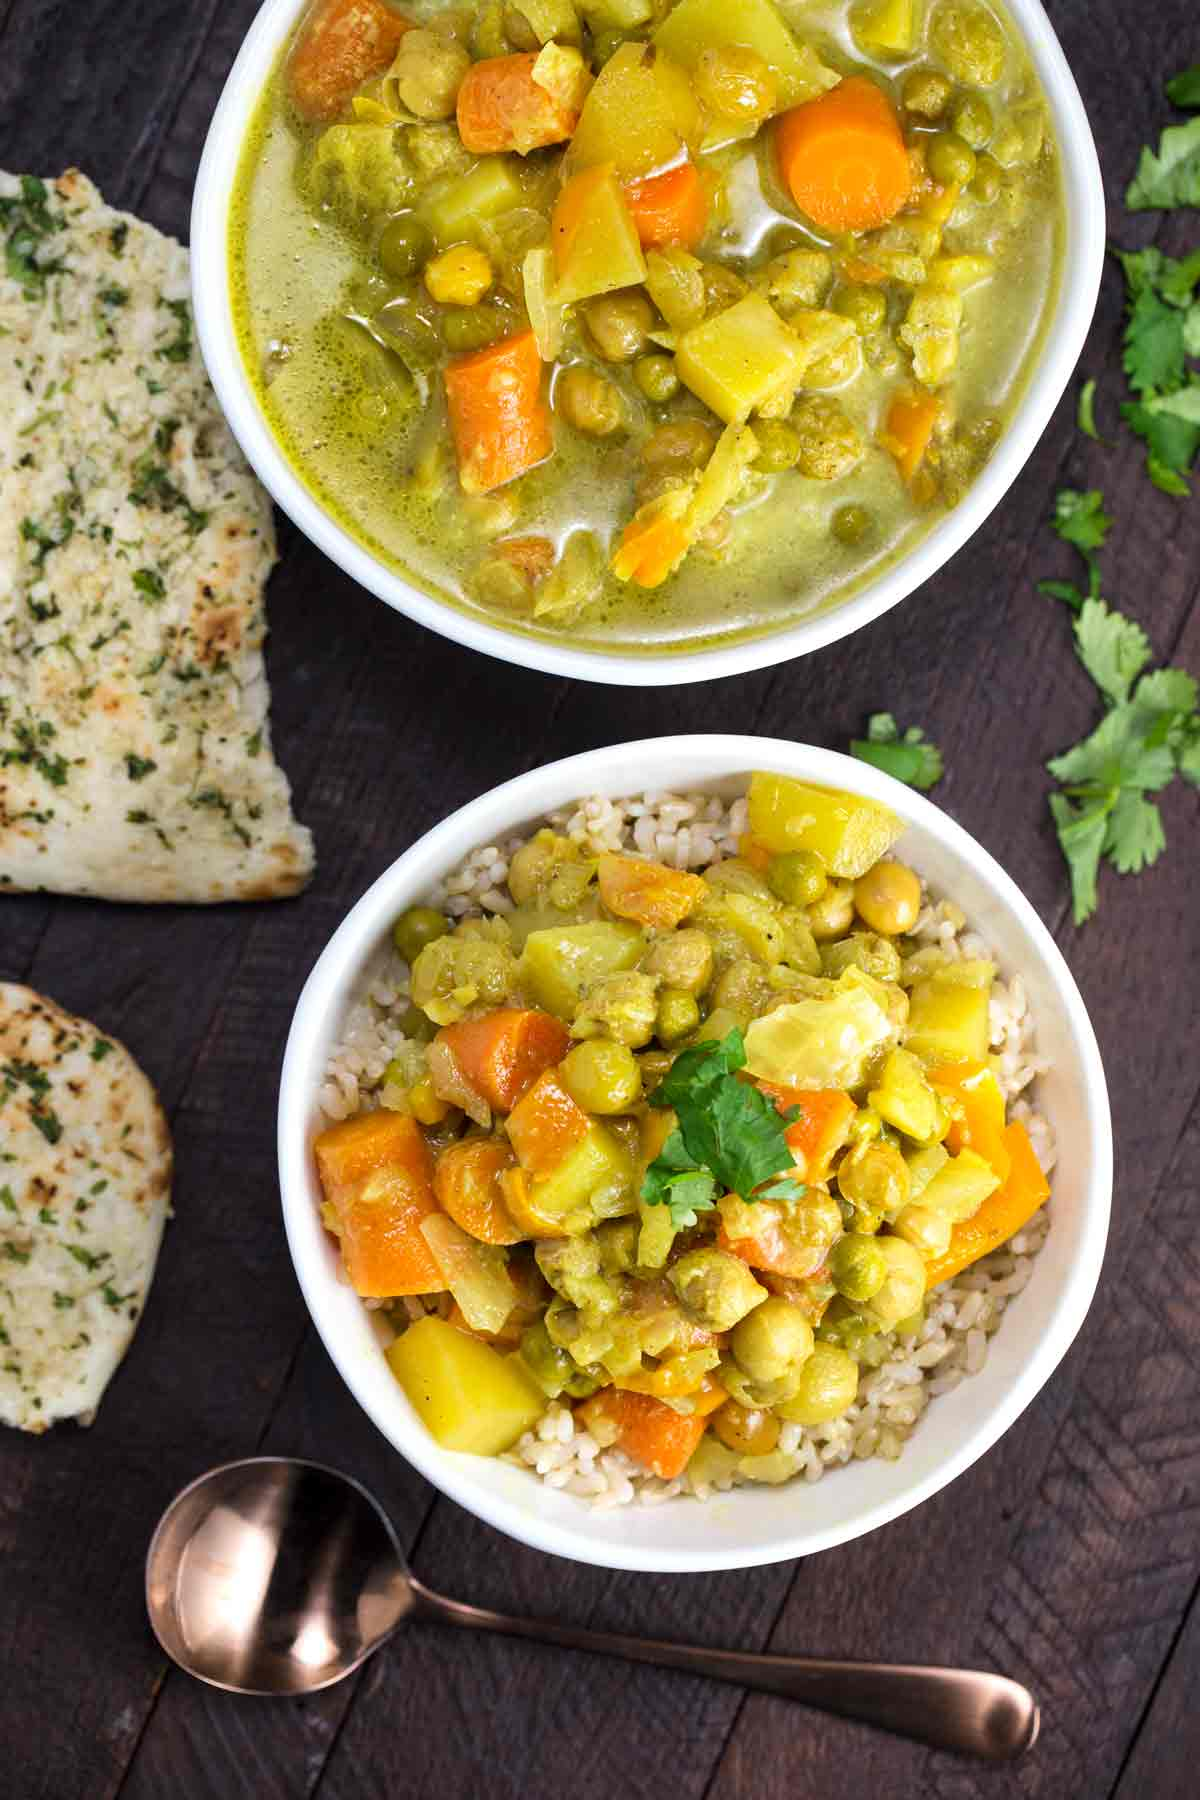 Slow Cooker Thai Yellow Curry | via veggiechick.com #vegan #glutenfree #oilfree